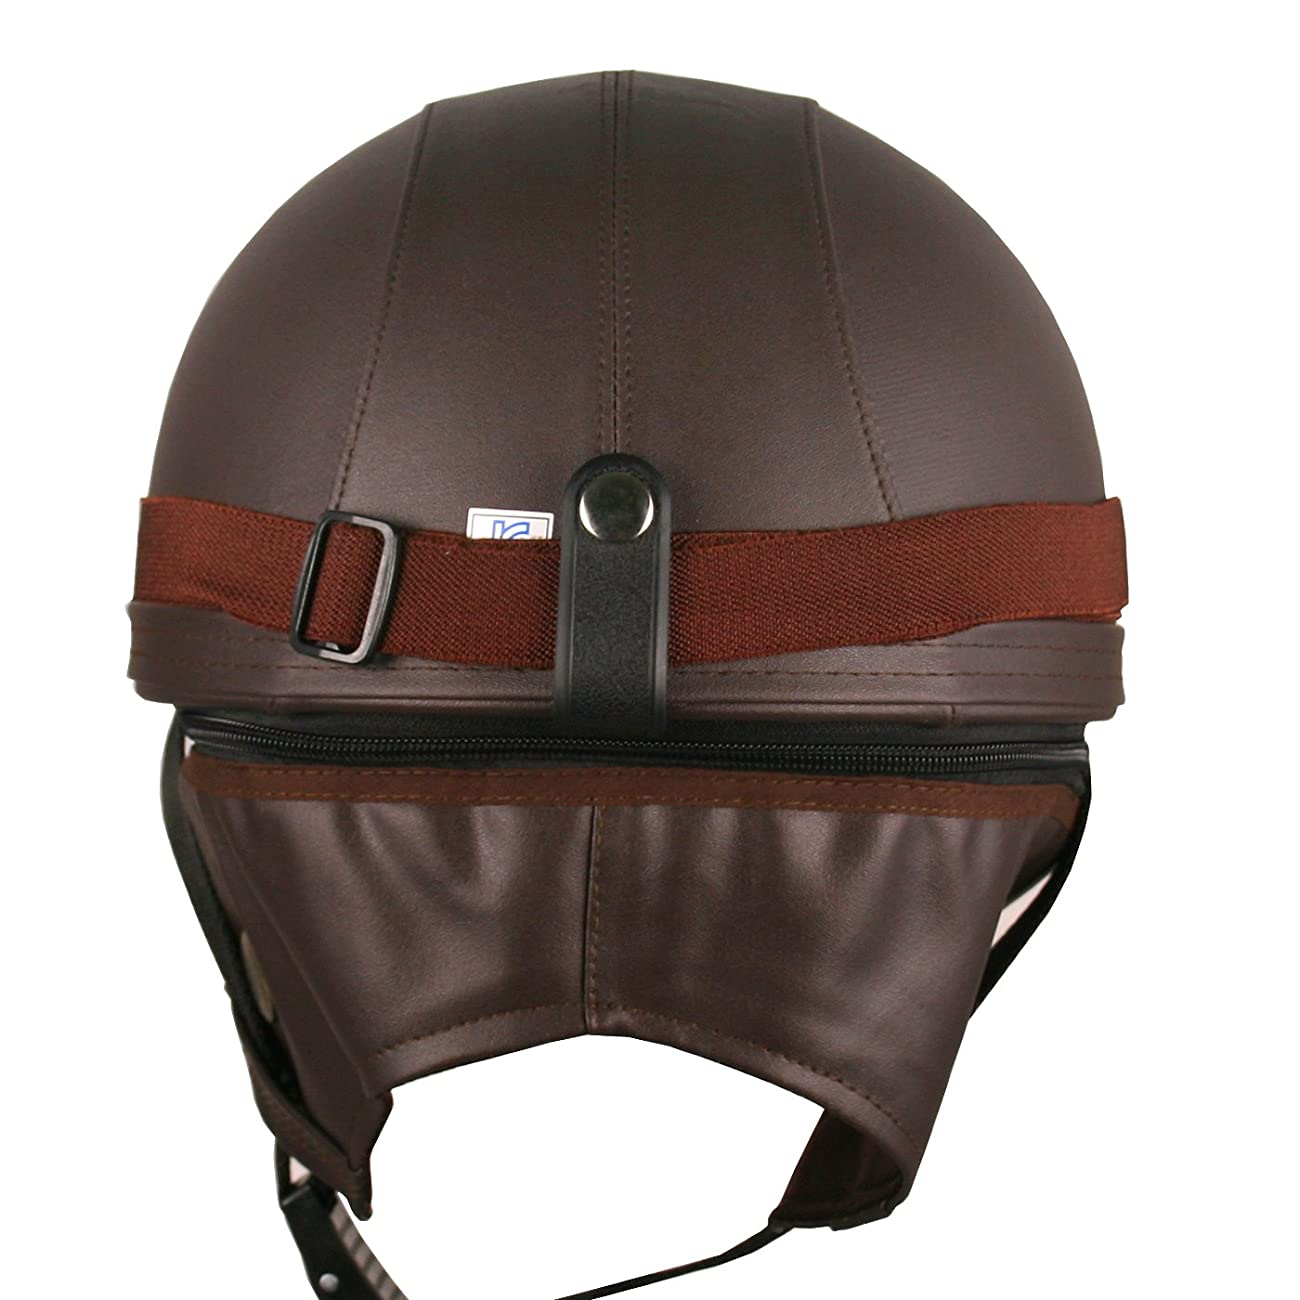 Leather Goggles German Vintage Style Half 1/2 Helmet Motorcycle Biker Cruiser Scooter Touring Helmet (Brown) 3